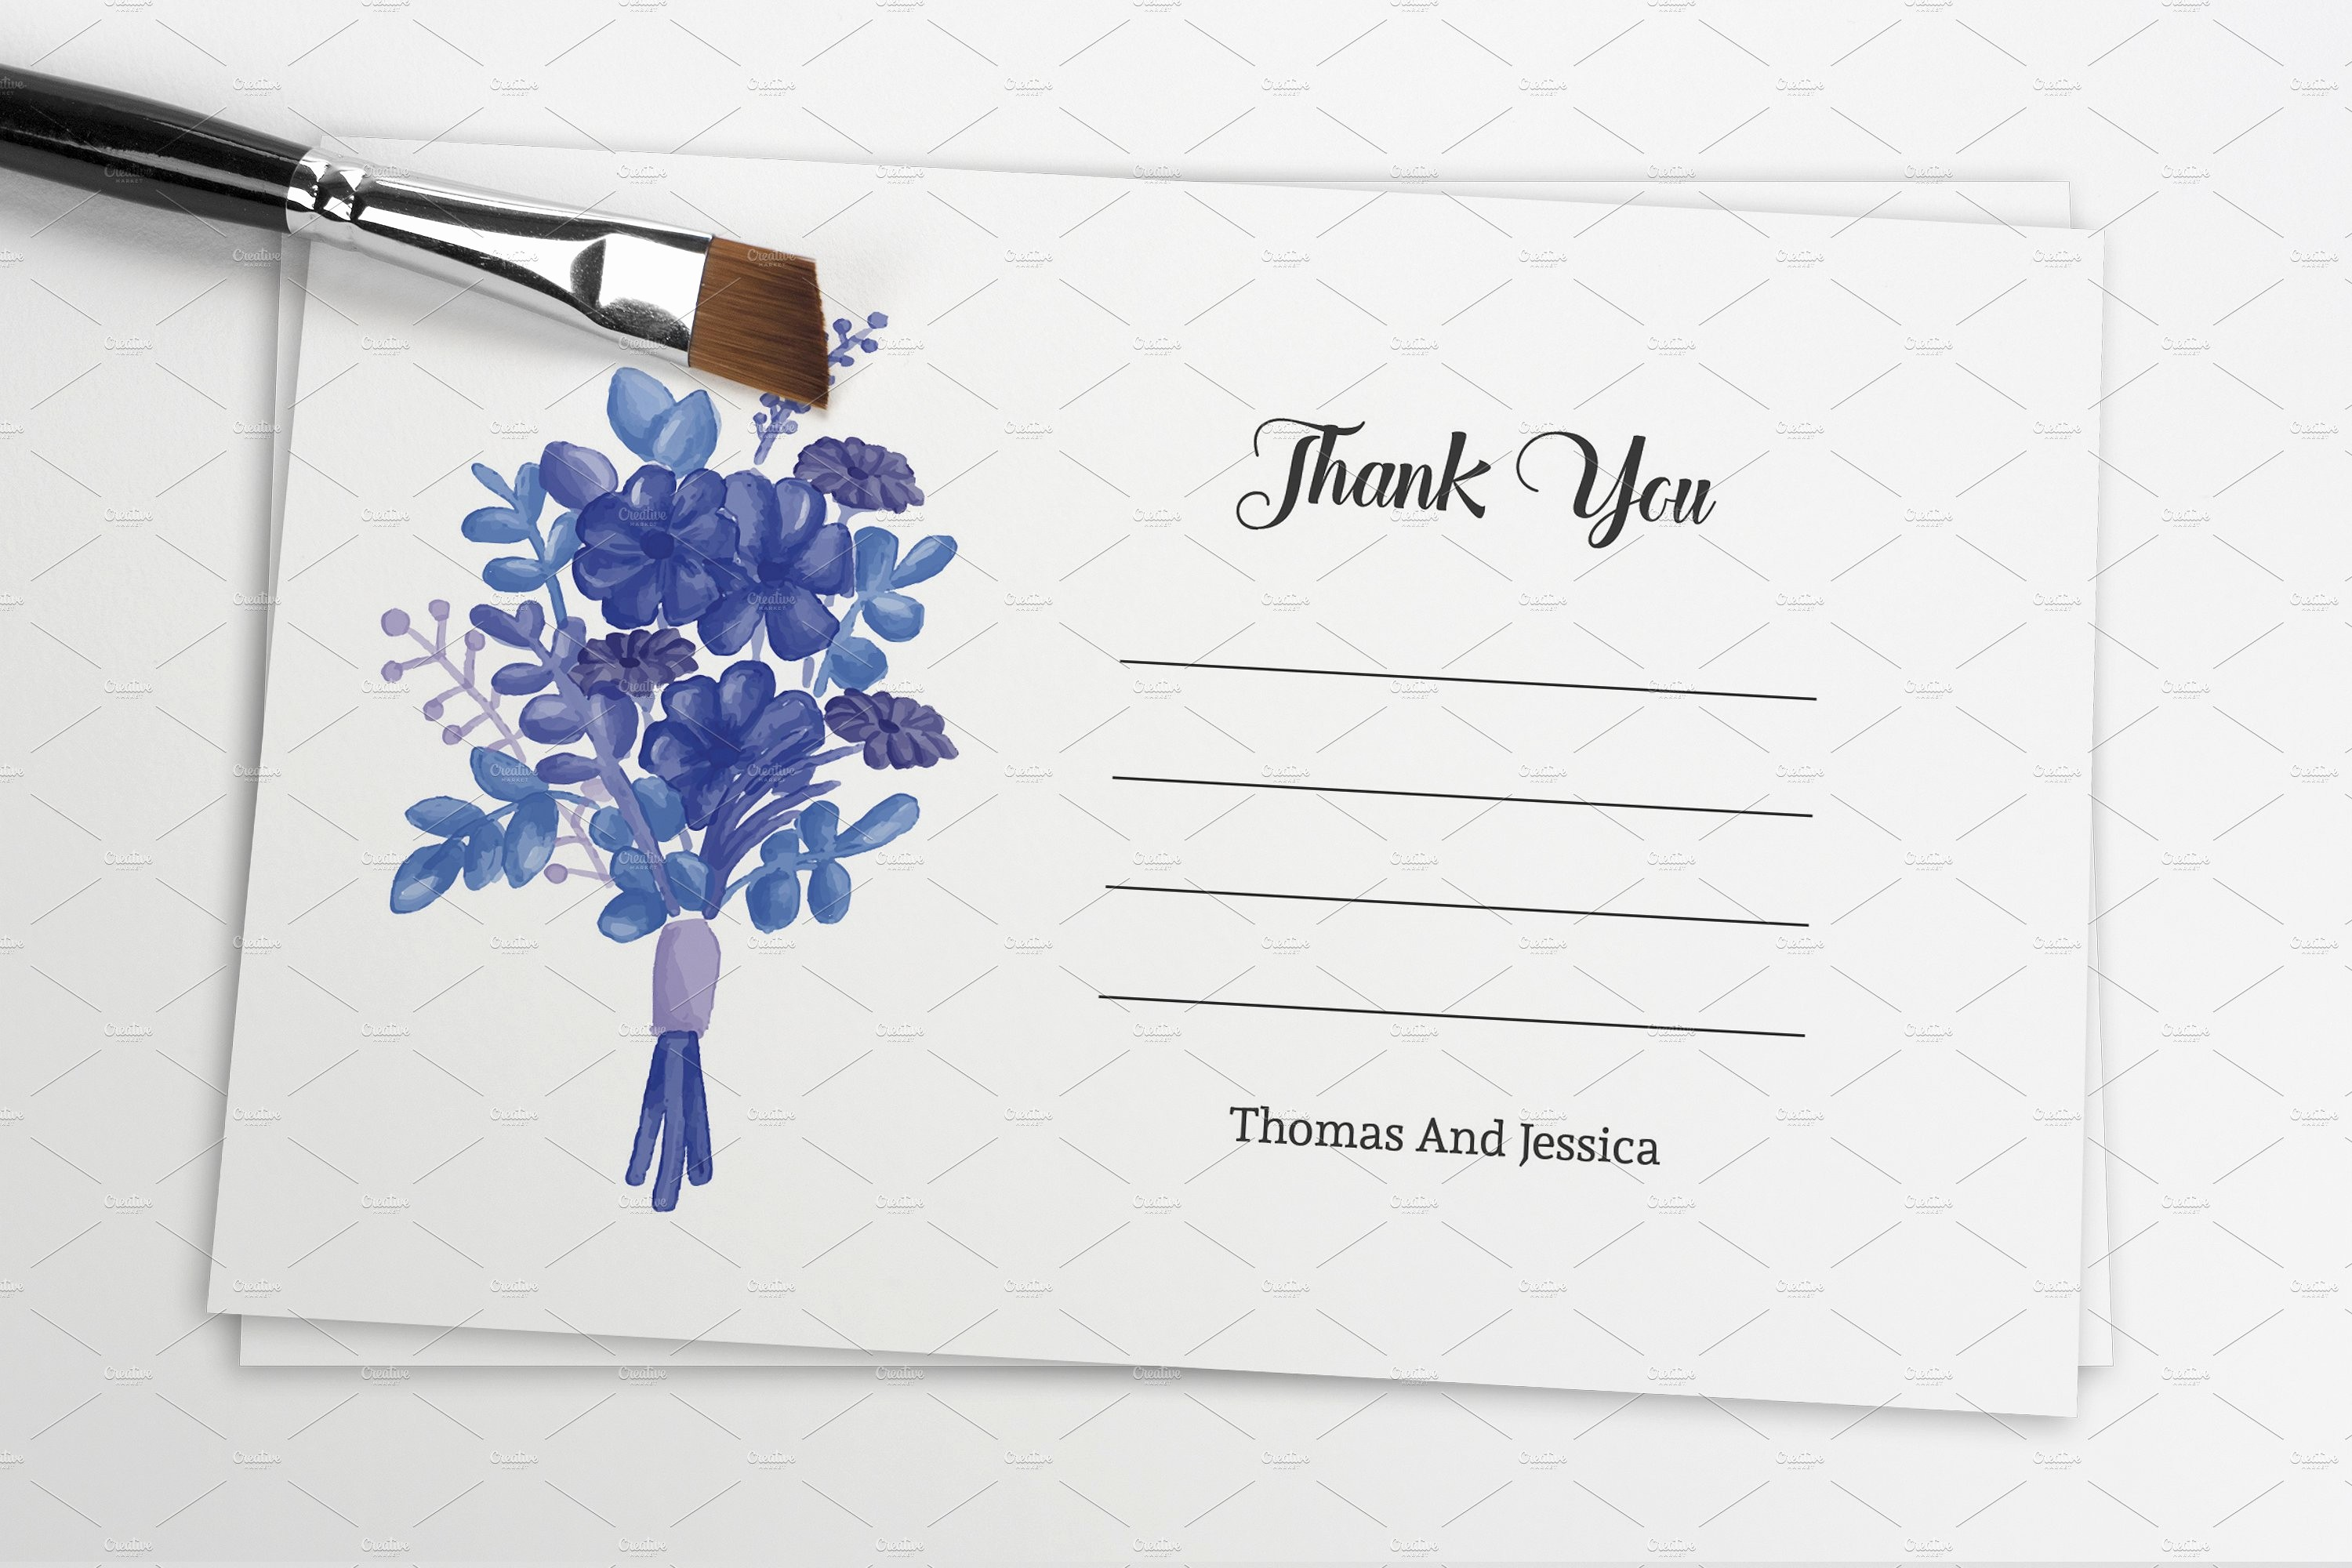 Template for Thank You Card Elegant Wedding Thank You Card Template Card Templates